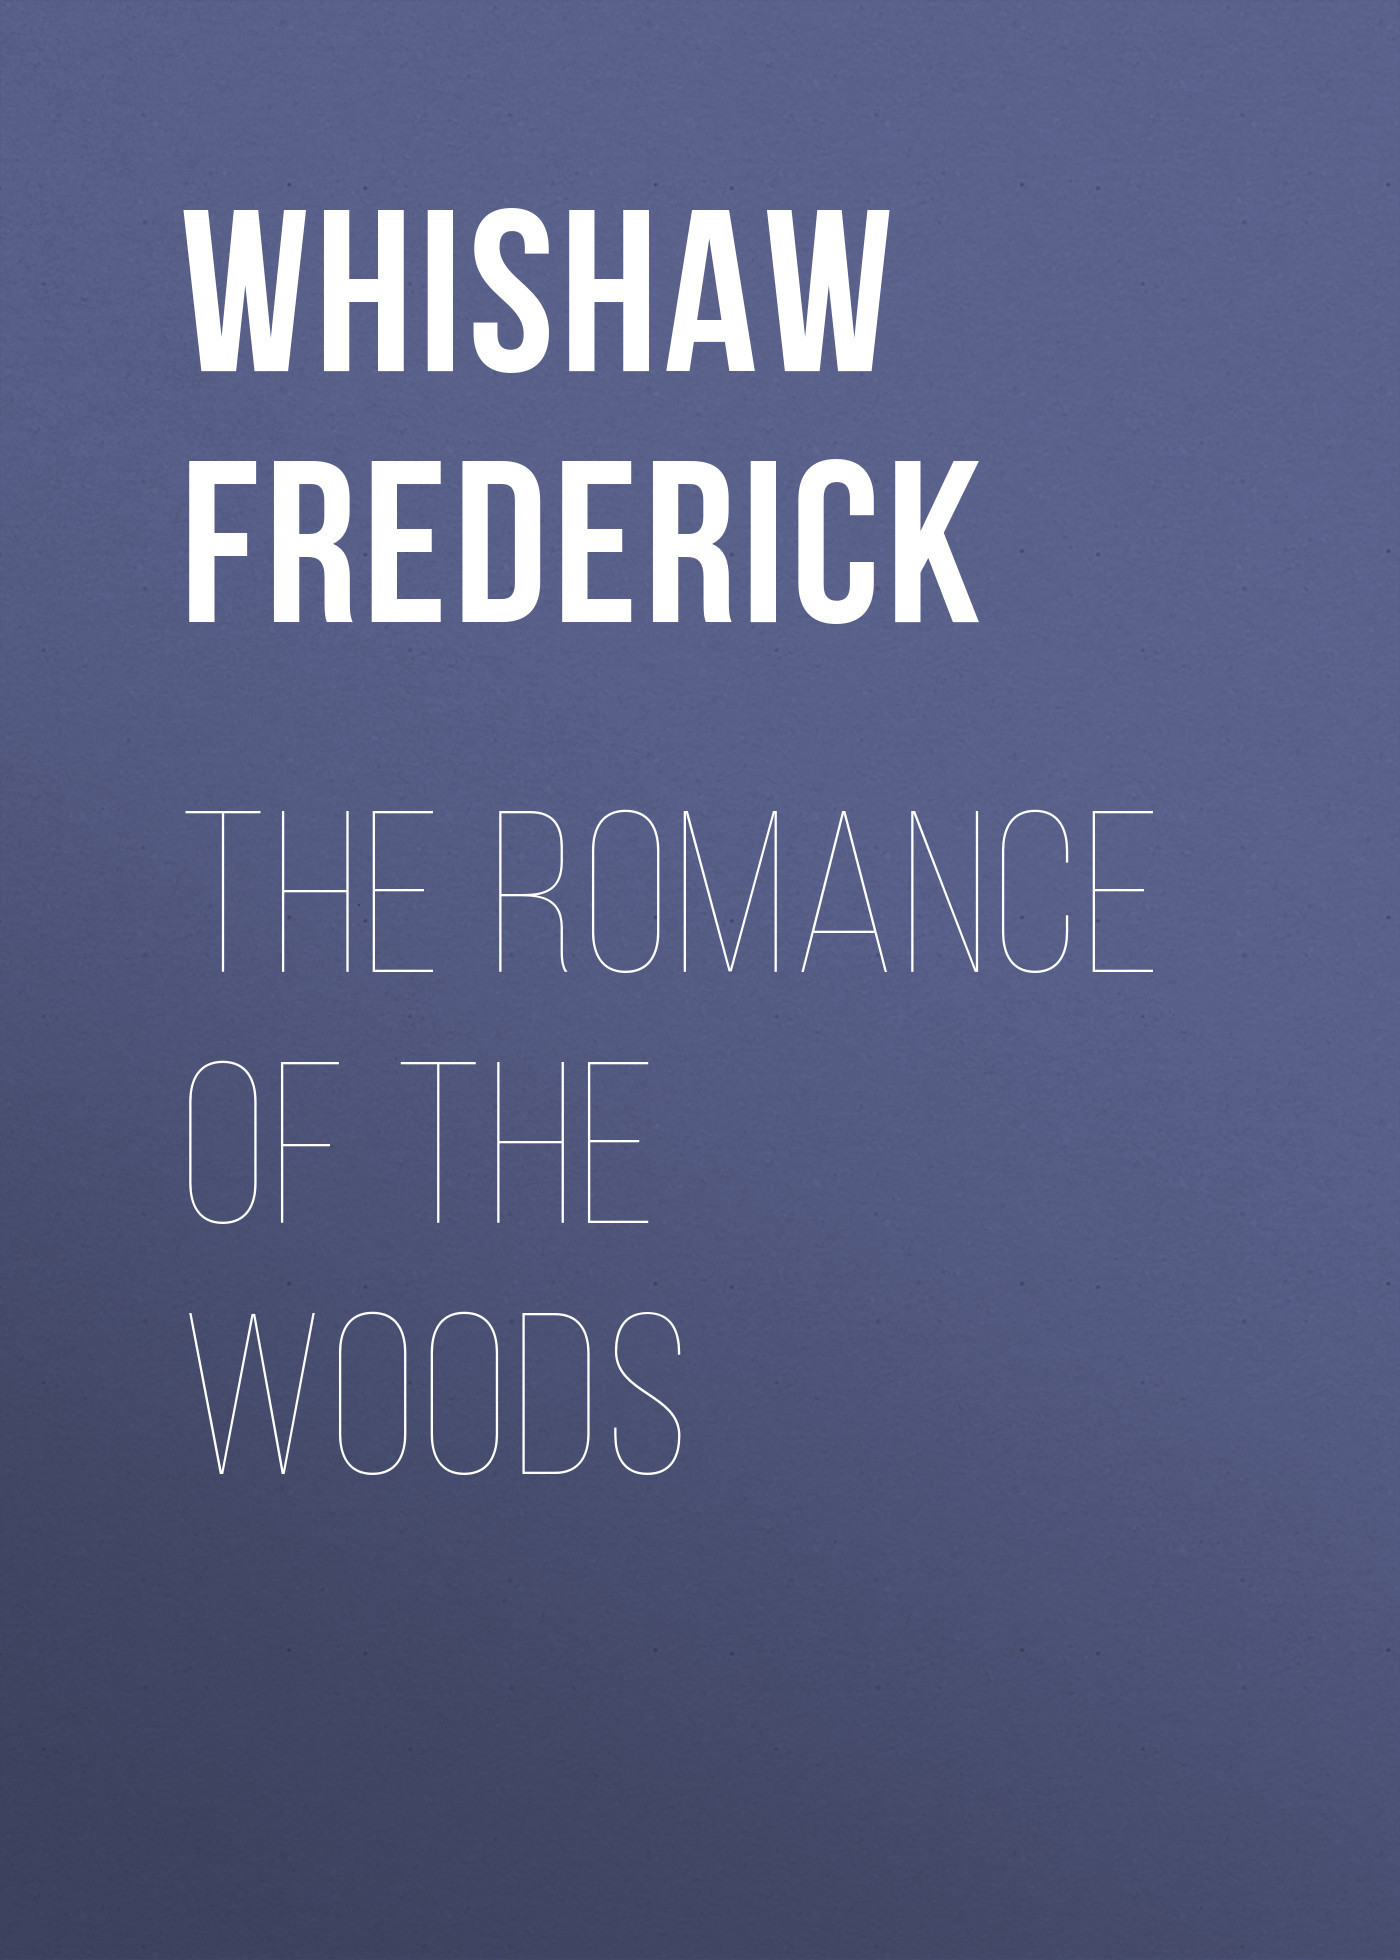 Whishaw Frederick The Romance of the Woods